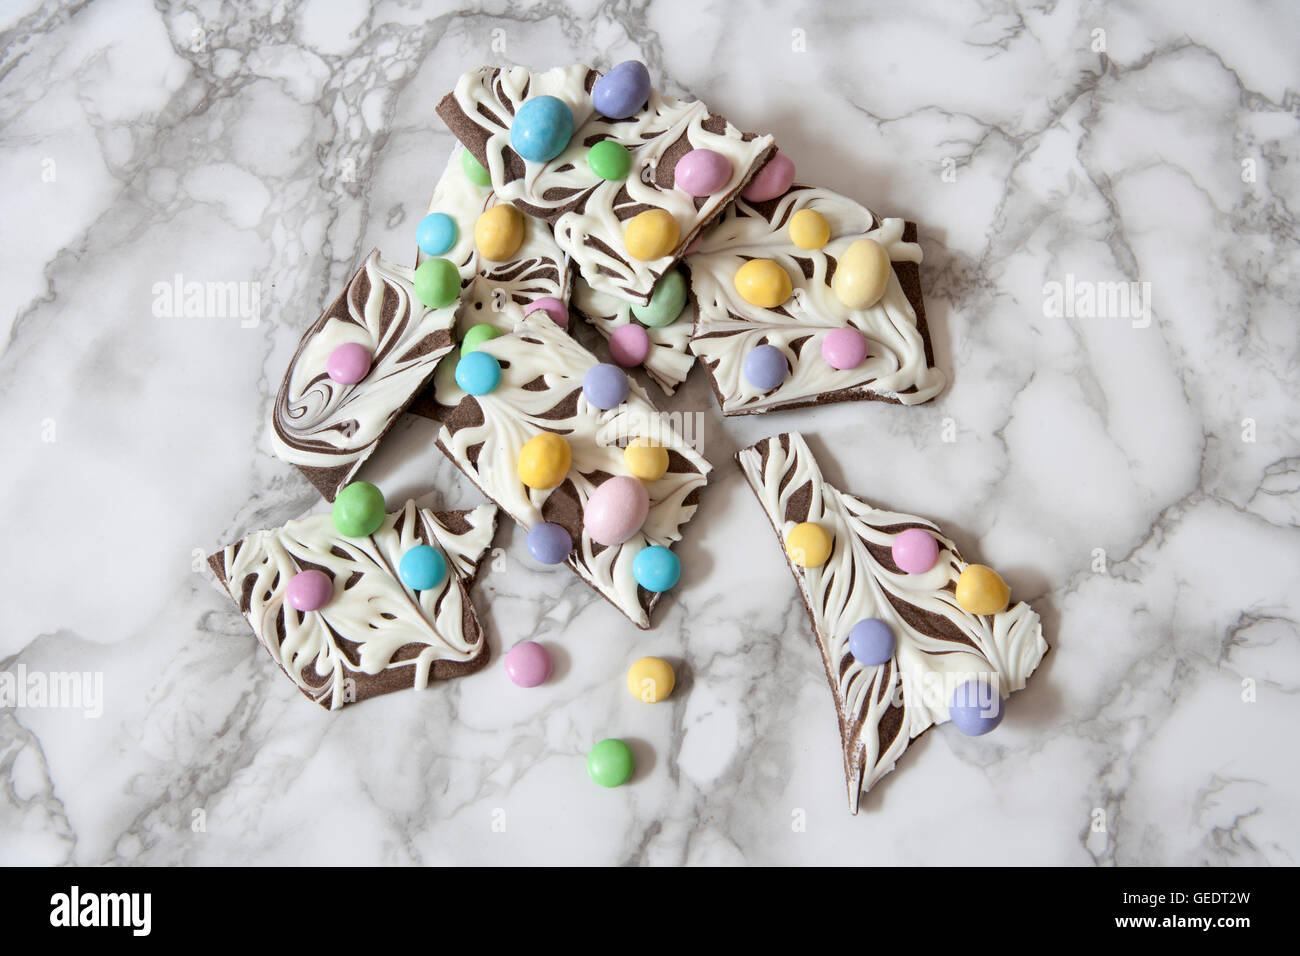 Marbled Chocolate Bark with Pastel Candies, Close-Up - Stock Image